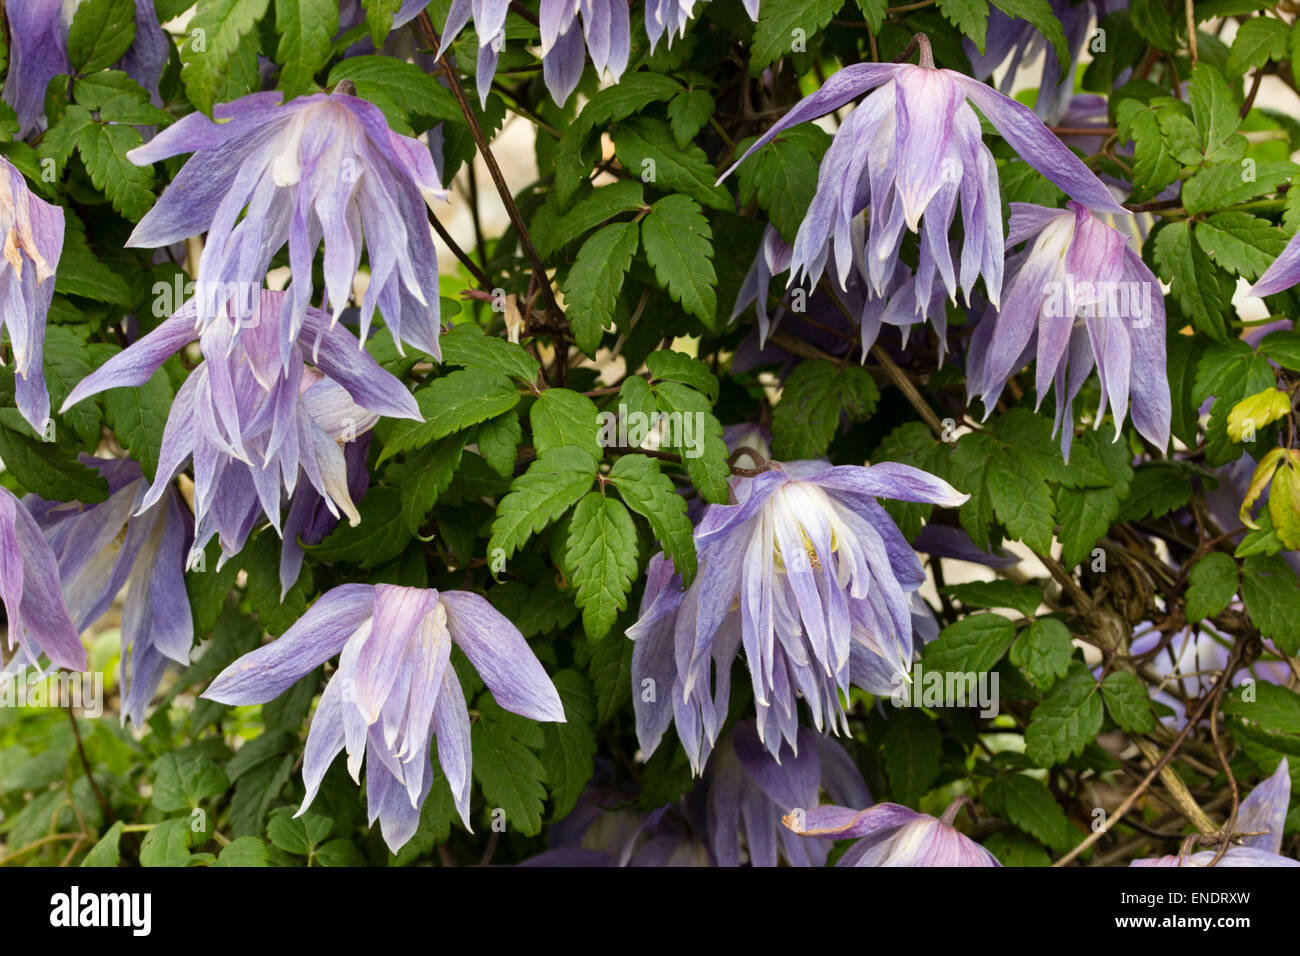 clematis macropetala stockfotos clematis macropetala bilder alamy. Black Bedroom Furniture Sets. Home Design Ideas